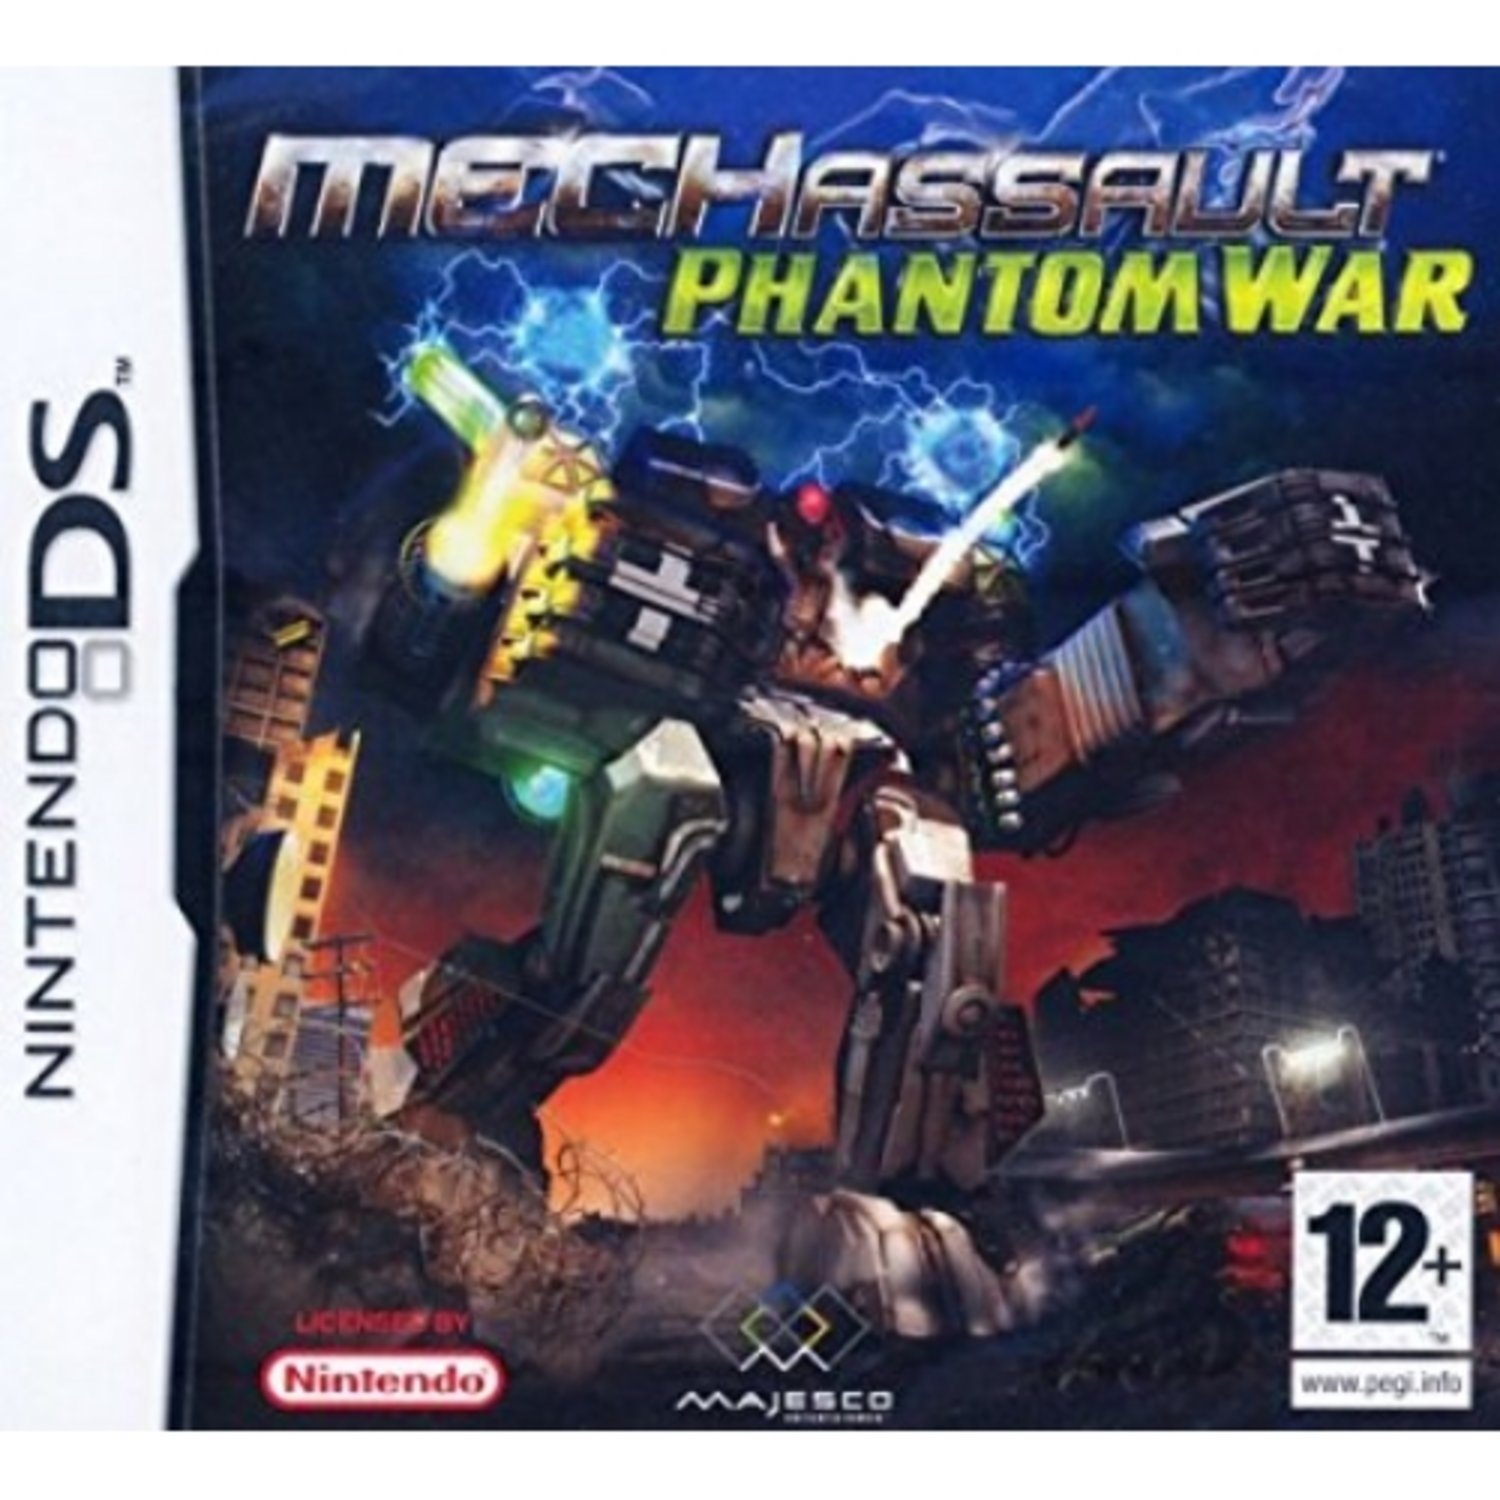 Mech Assault Phantom War - Nintendo DS